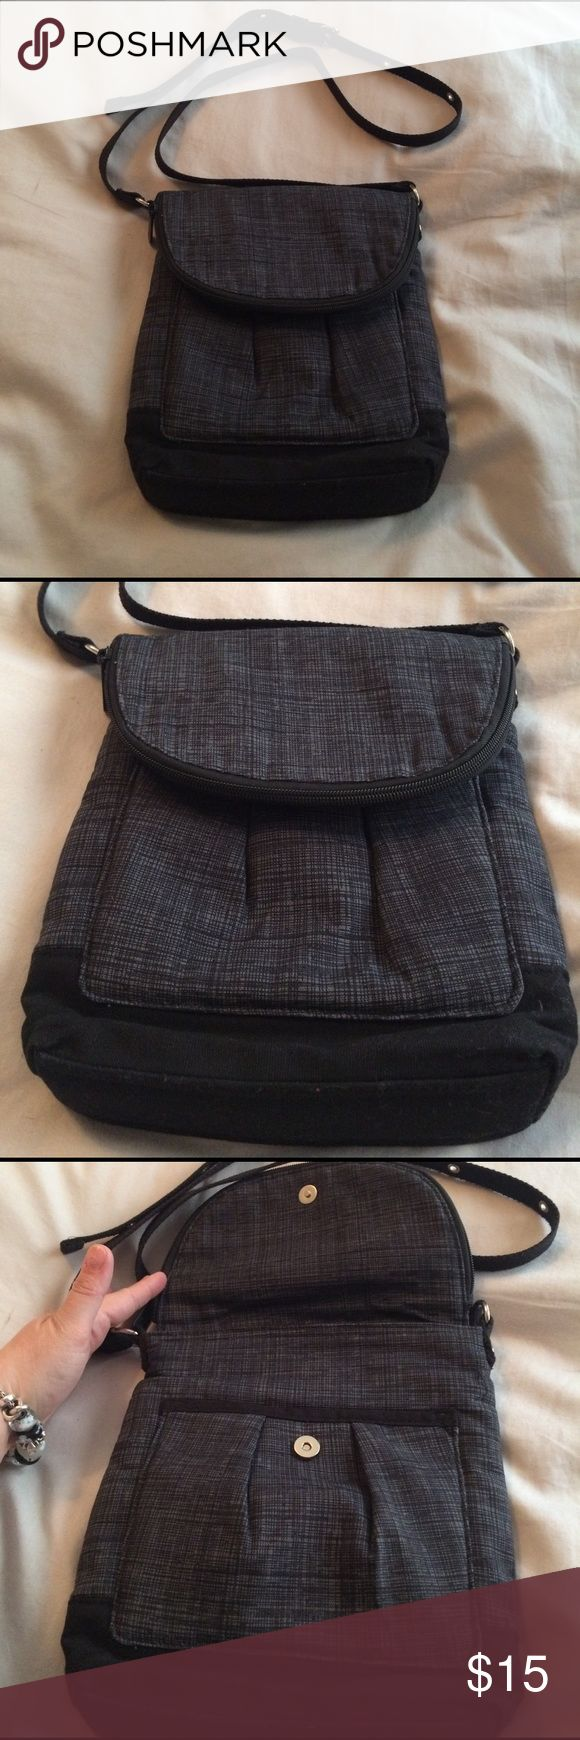 Thirty-one organista crossbody handbag blk/gry Being offered is a new condition thirty-one organists crossbody adjustable strap handbag with a black and grey base. Smoke free home I do bundle and take reasonable offers. Other 31 items listed thirty-one  Bags Crossbody Bags